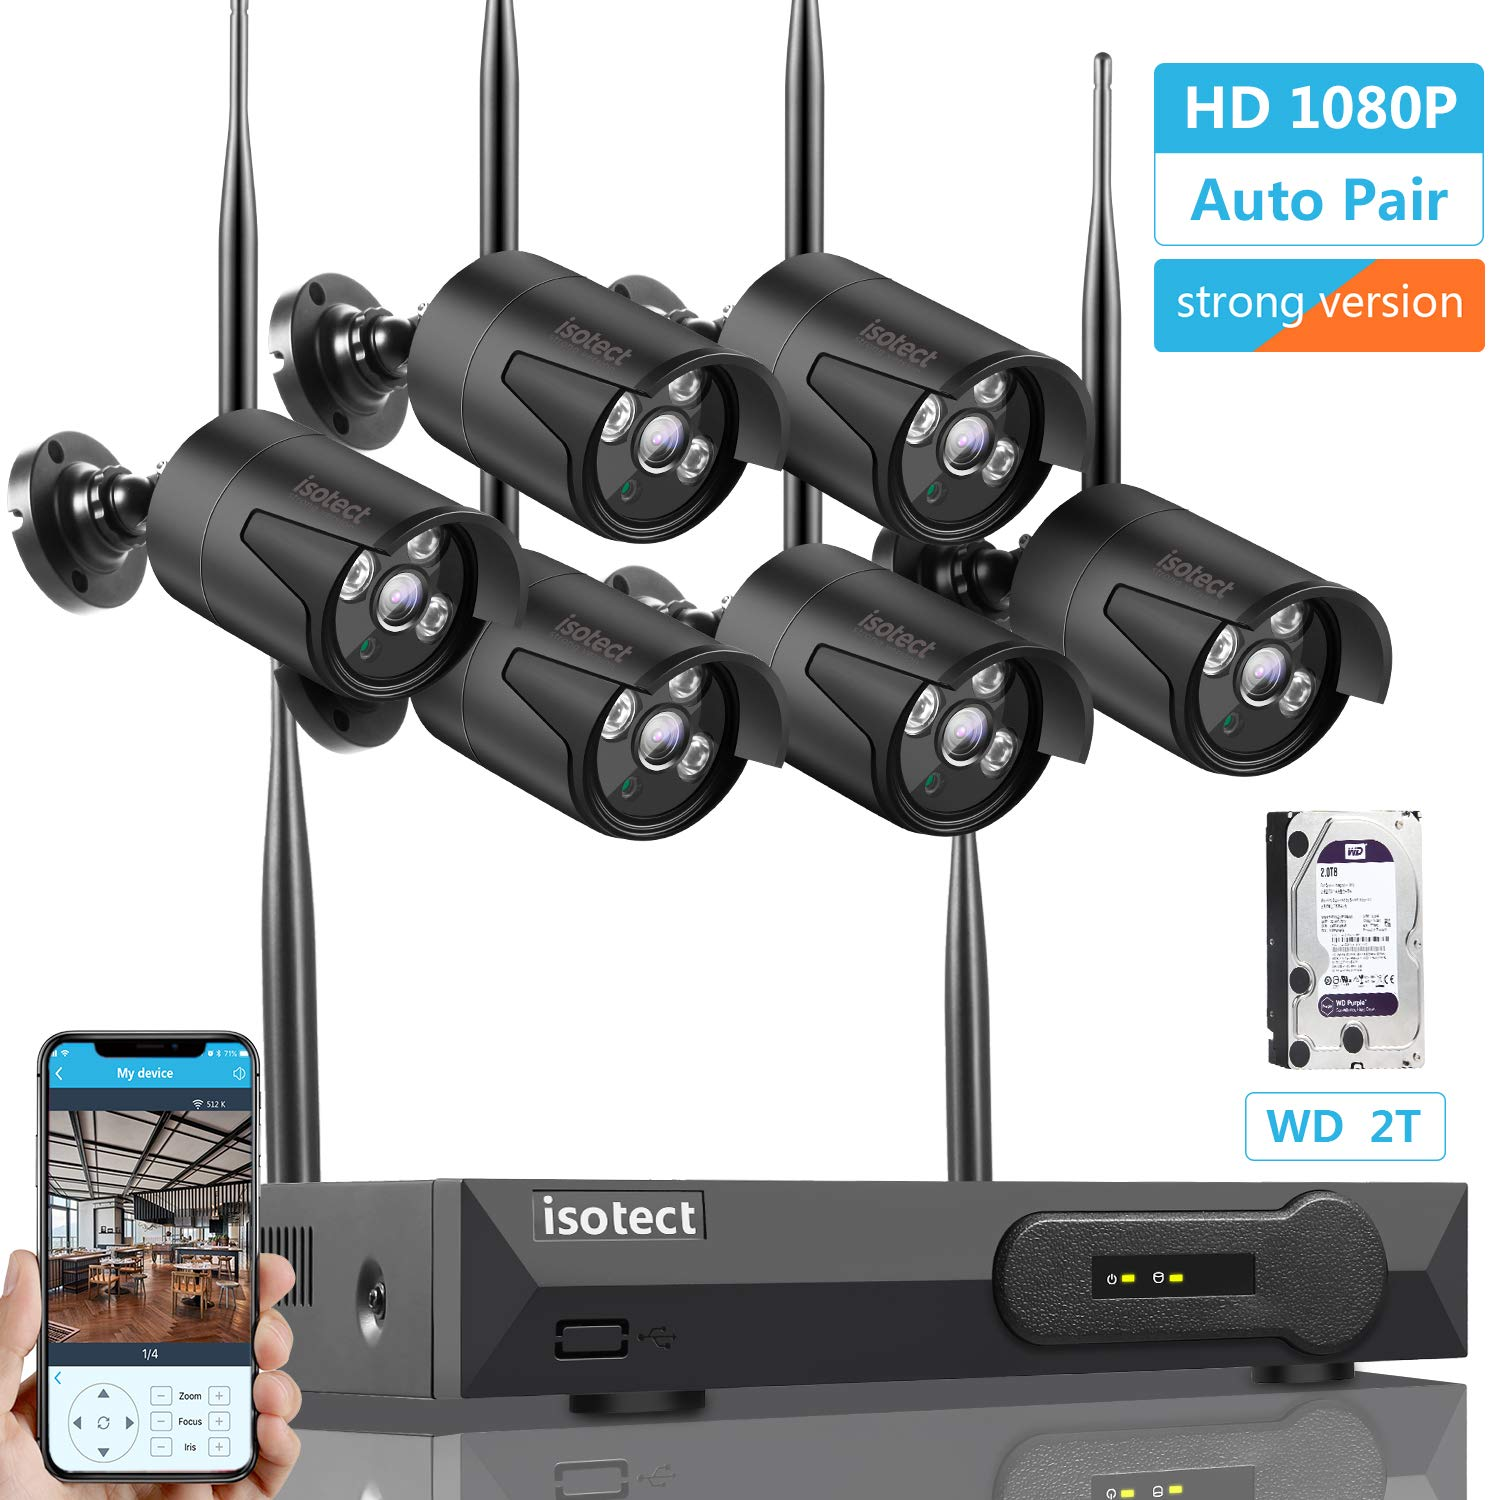 2019 Newest Strong Version Wireless Security Camera System, ISOTECT 8CH Full HD 1080P Video Security System, 6pcs Black Outdoor Indoor IP Cameras, 65ft Night Vision and Easy Remote View, 2TB HDD